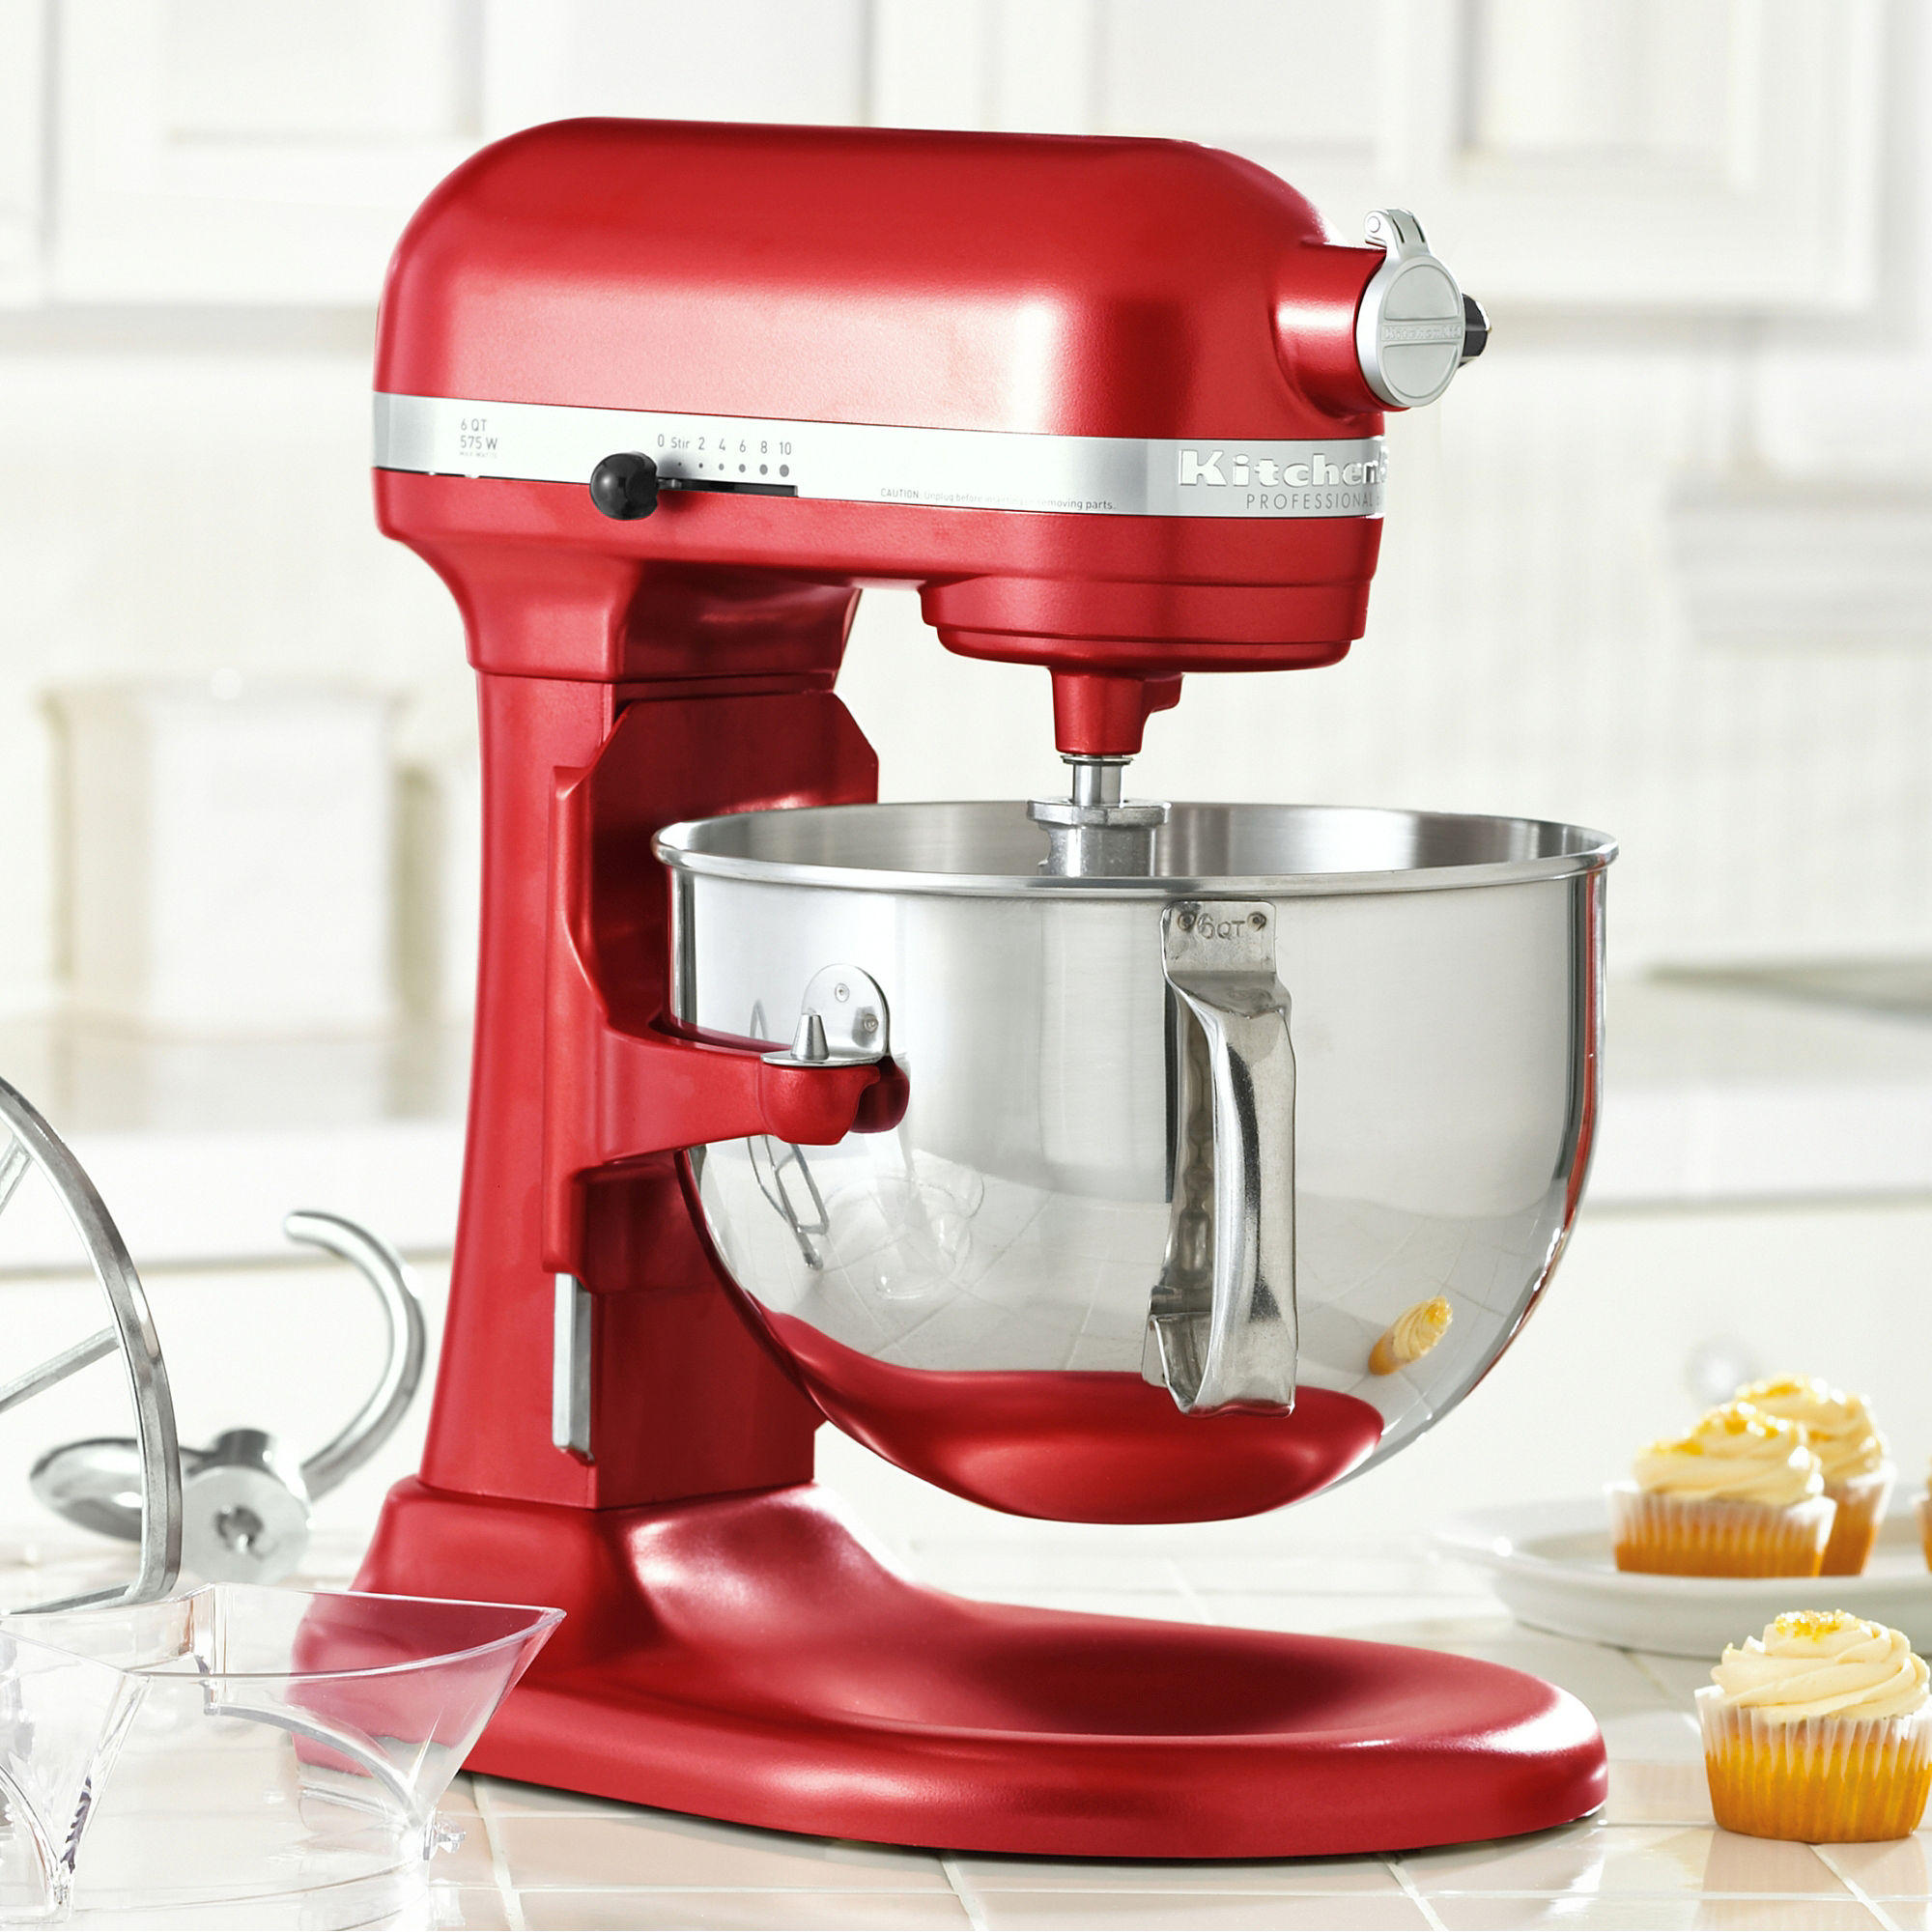 KitchenAid KP26M1X Pro 600 Stand Mixer (Refurbished)